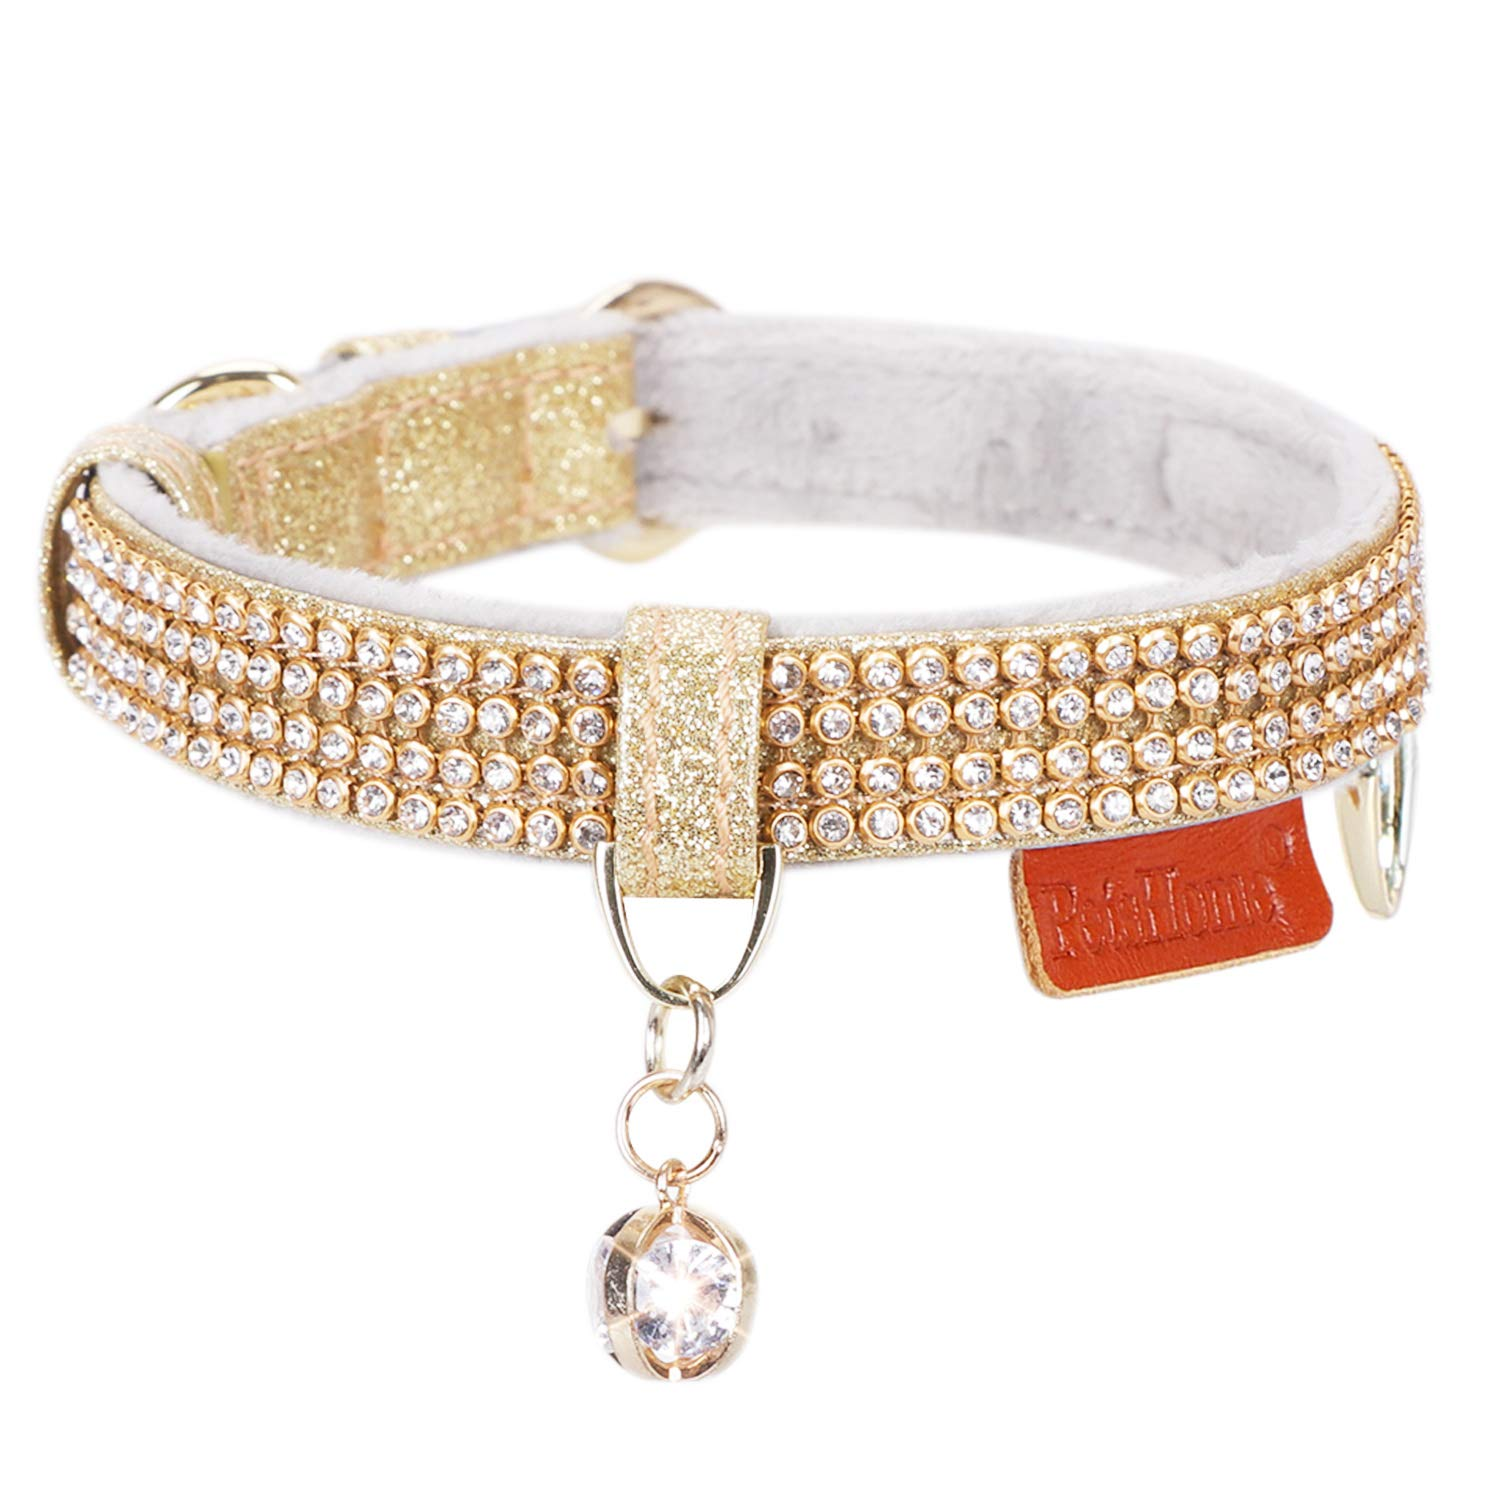 PetsHome Cat Collar, Dog Collar, [Bling Rhinestones] Premium PU Leather with Pendant Adjustable Collars for Small Dog and Cat Small Gold by PetsHome